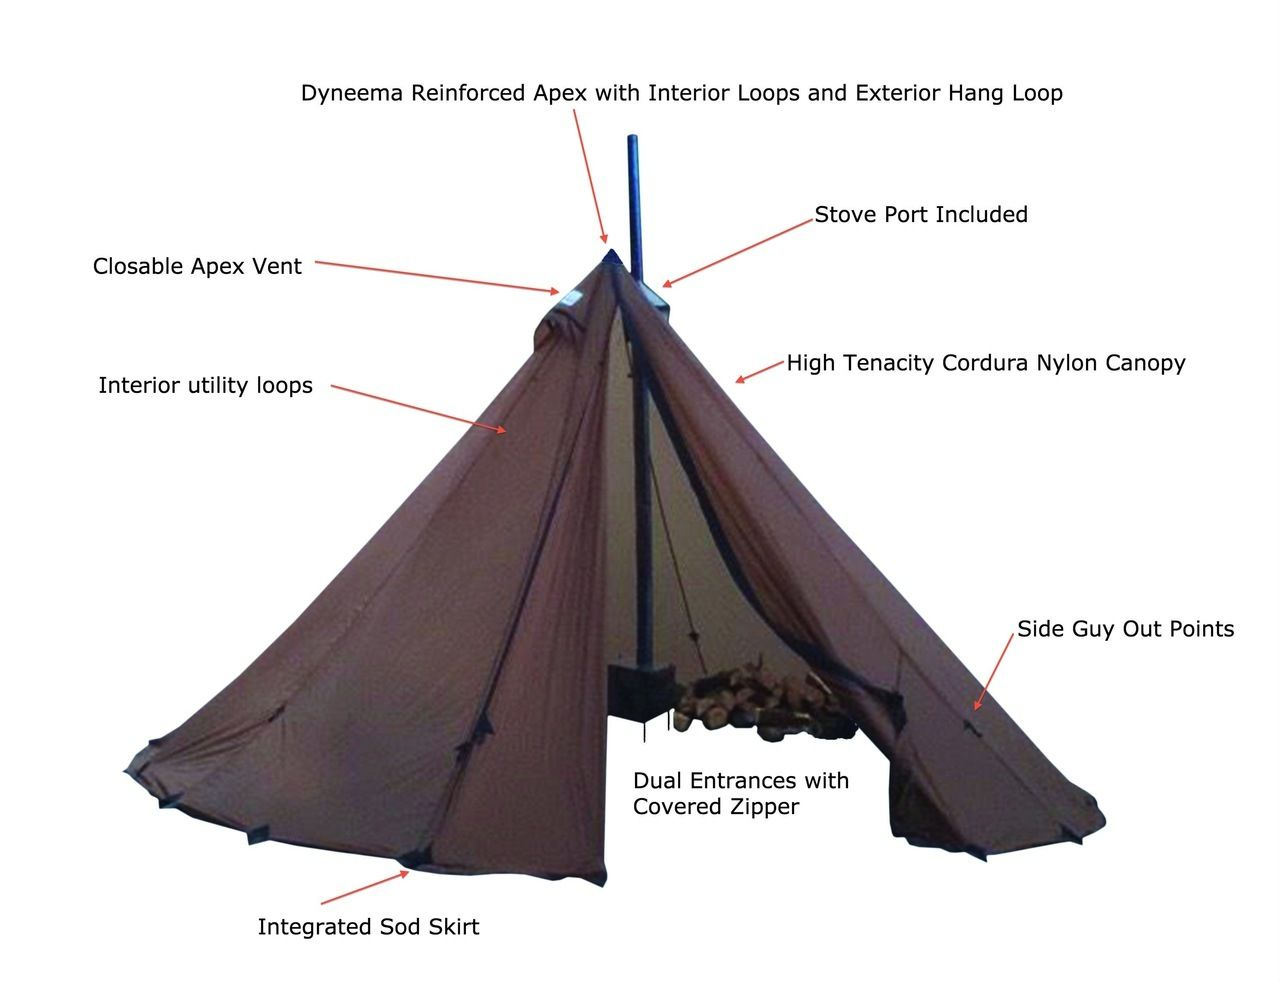 Seek Outside | 4 Person Tipi Tent with Stove Port. Color Brown  sc 1 st  Pinterest & Seek Outside | 4 Person Tipi Tent with Stove Port. Color: Brown ...